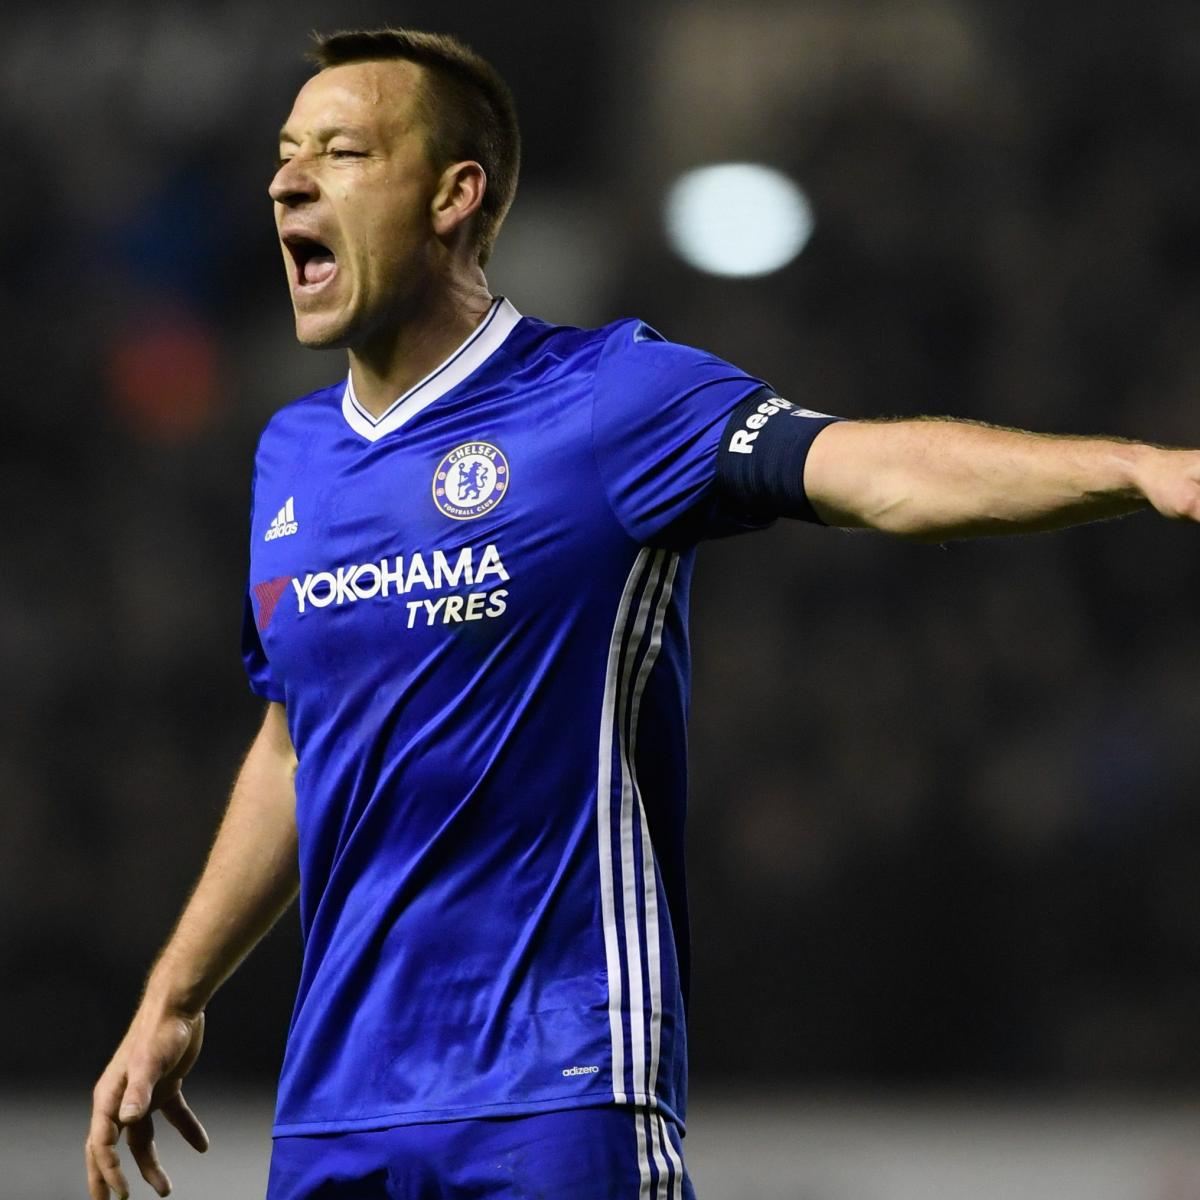 Chelsea transfer news and latest rumours on Metro.co.uk